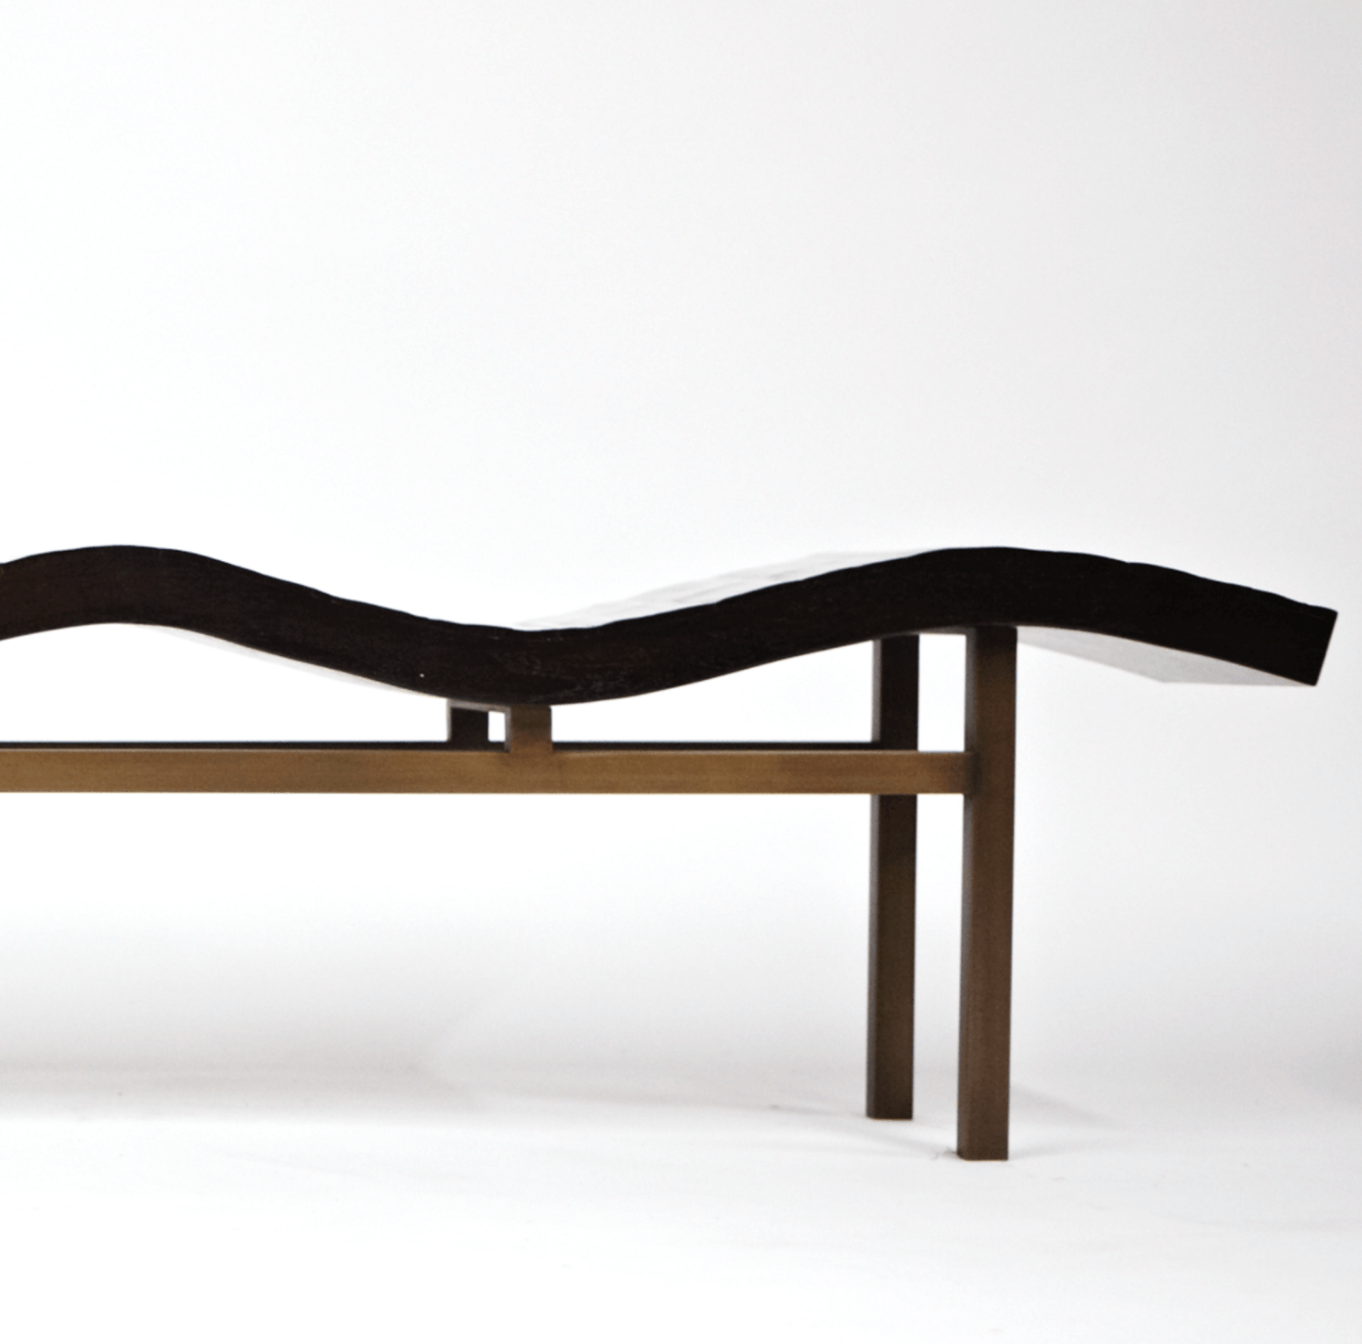 Aguirre Design - Bamboo and Brass Wave Bench